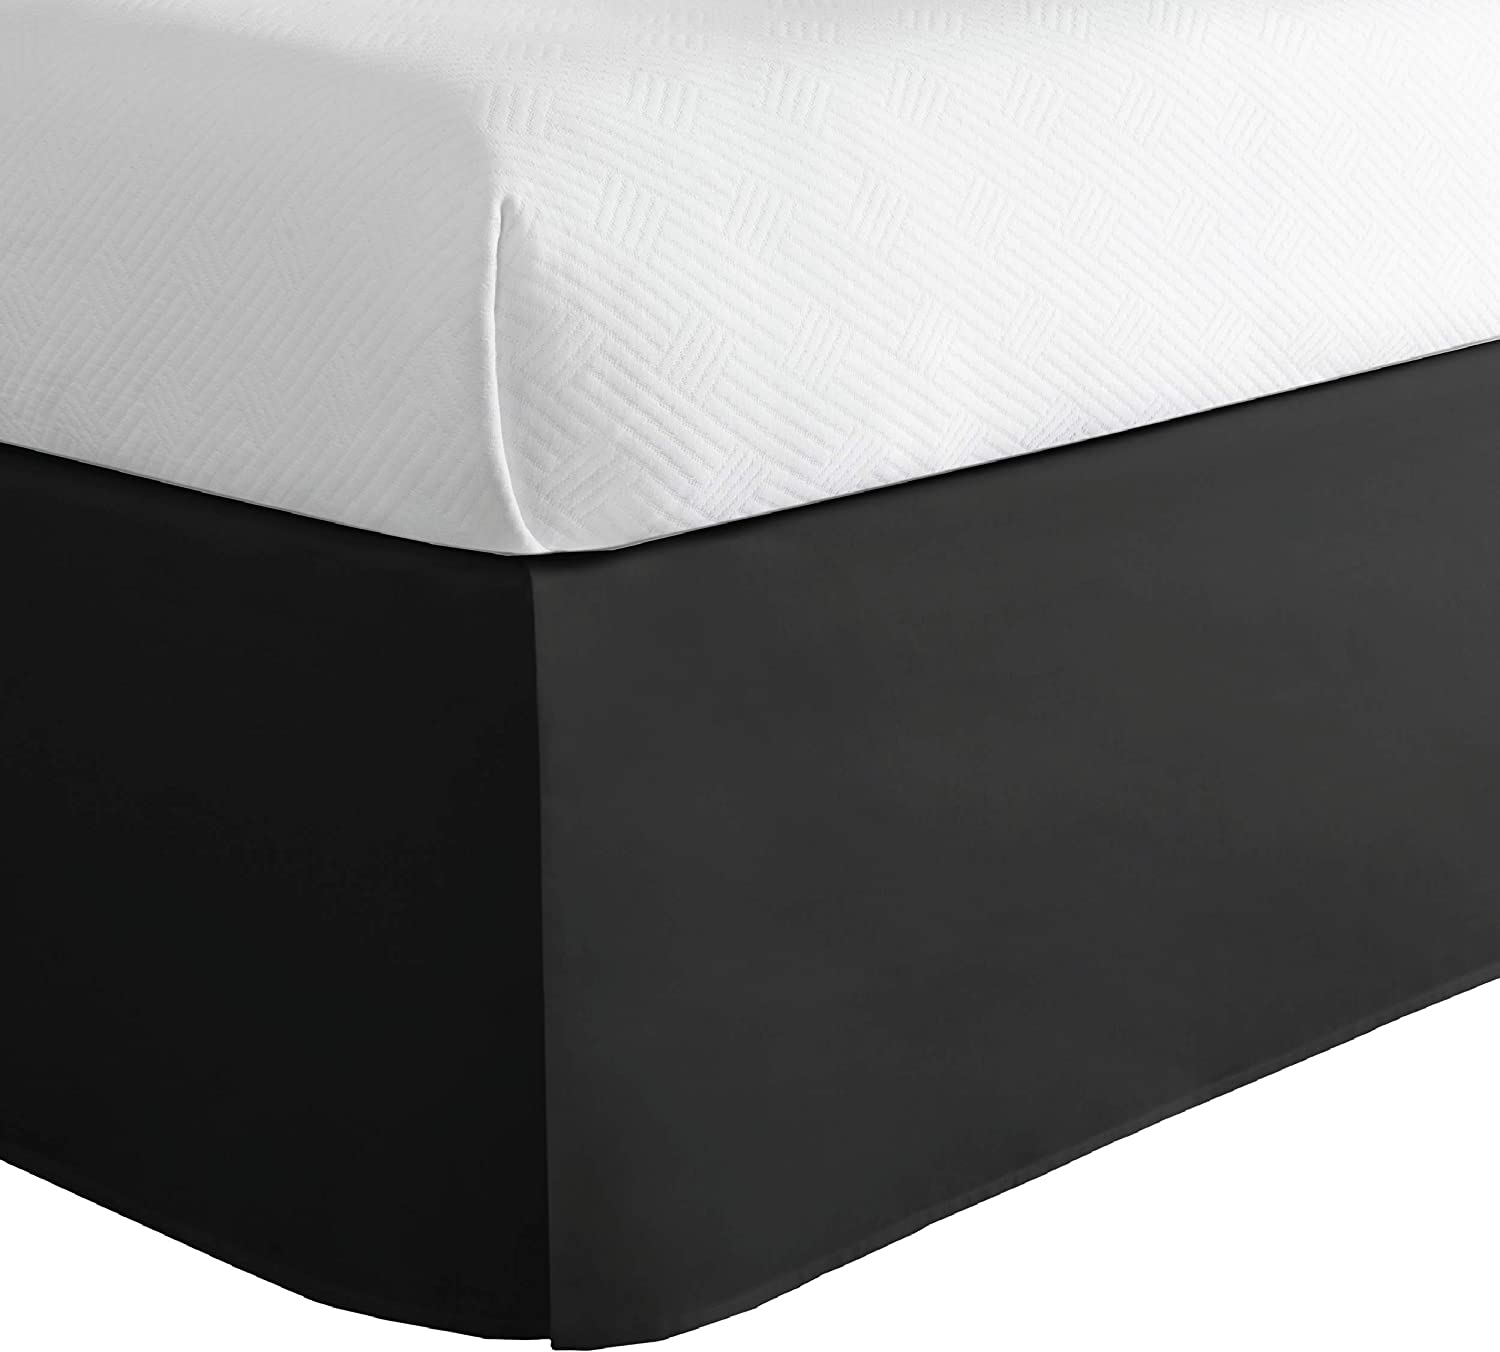 Lux Hotel Microfiber Tailored Bed Skirt with Classic 14 Inch Drop Length Pleated Styling, Twin XL, Black